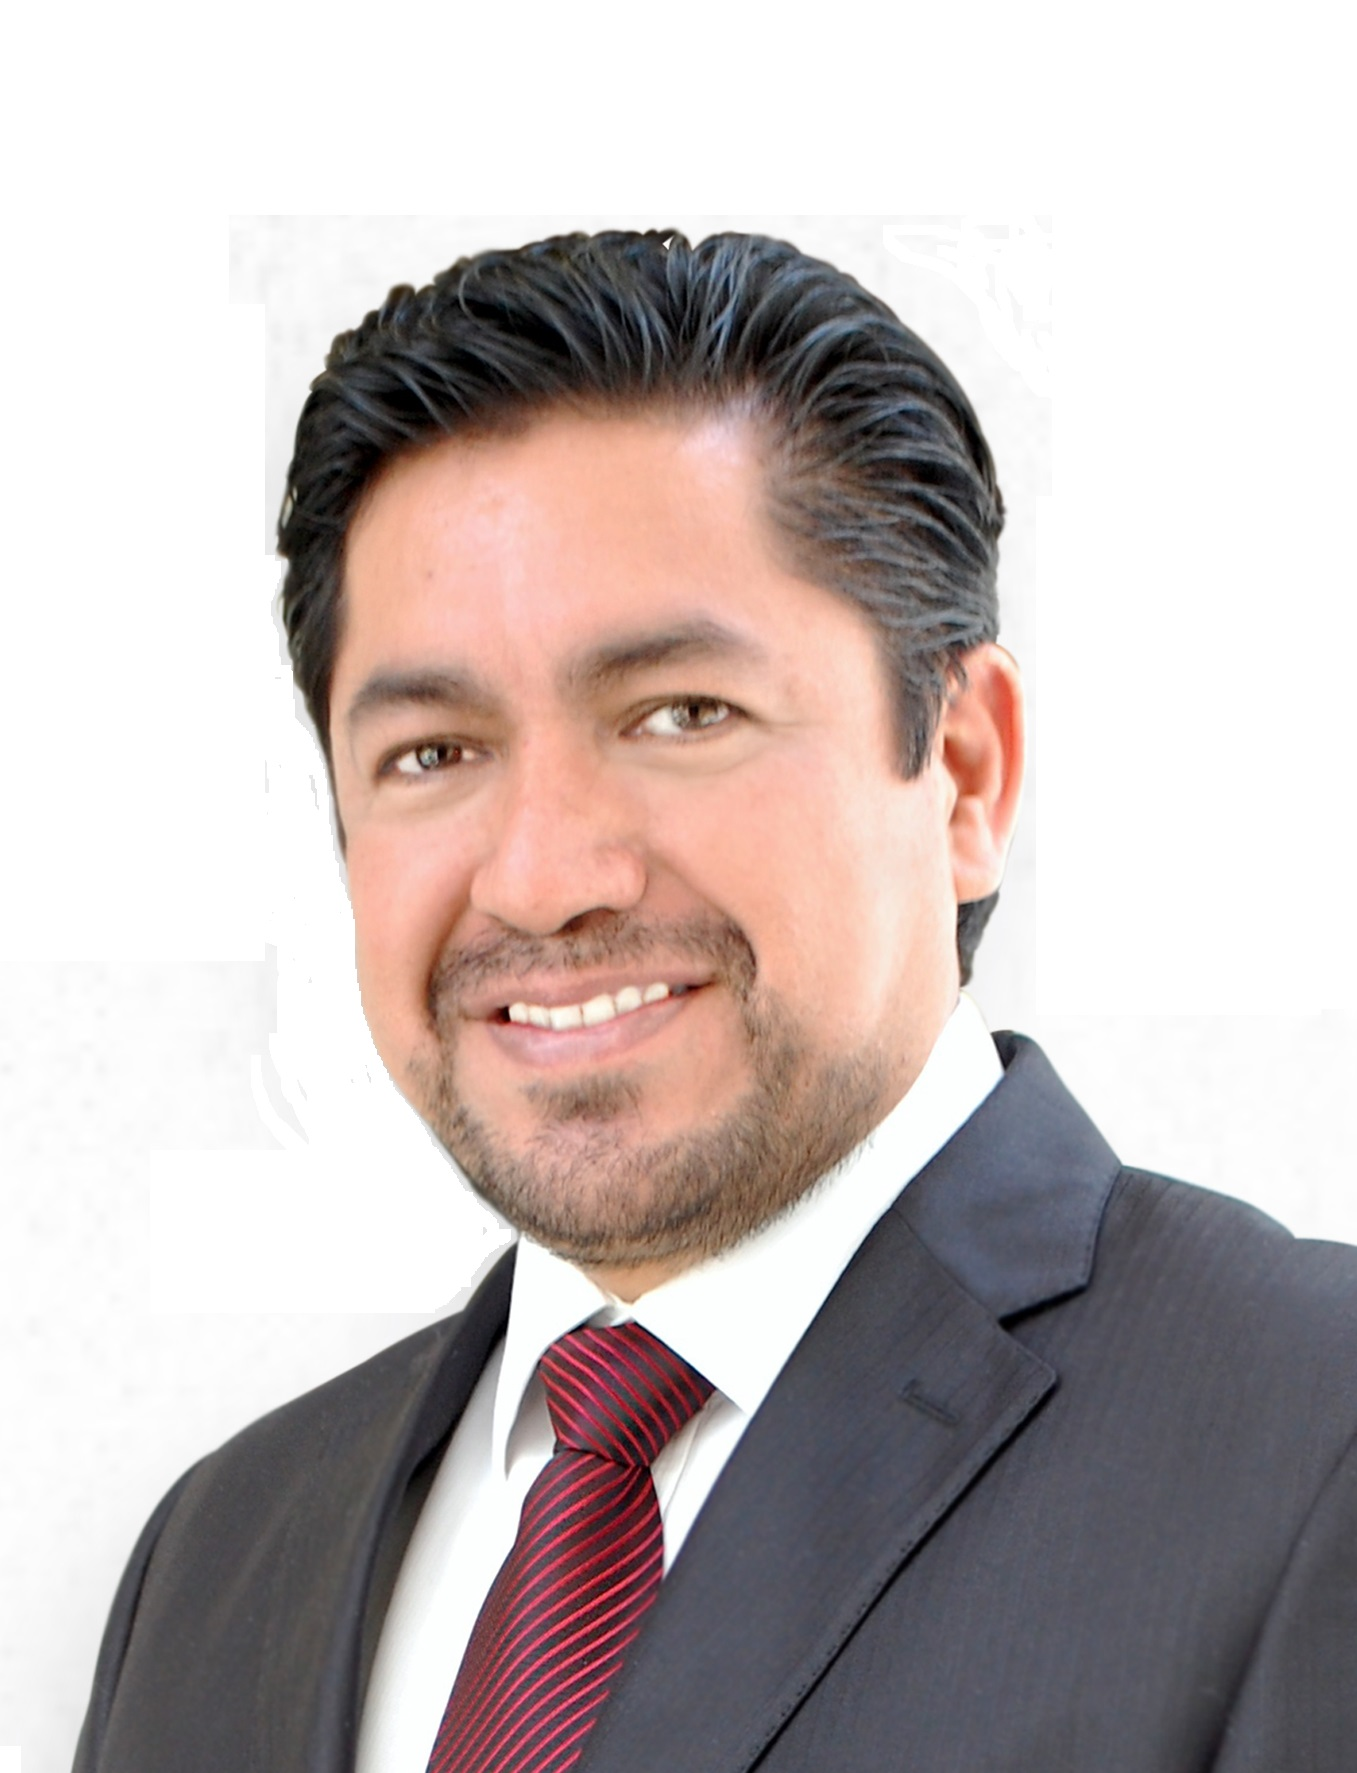 Fausto Escobar, Director General de HD México.